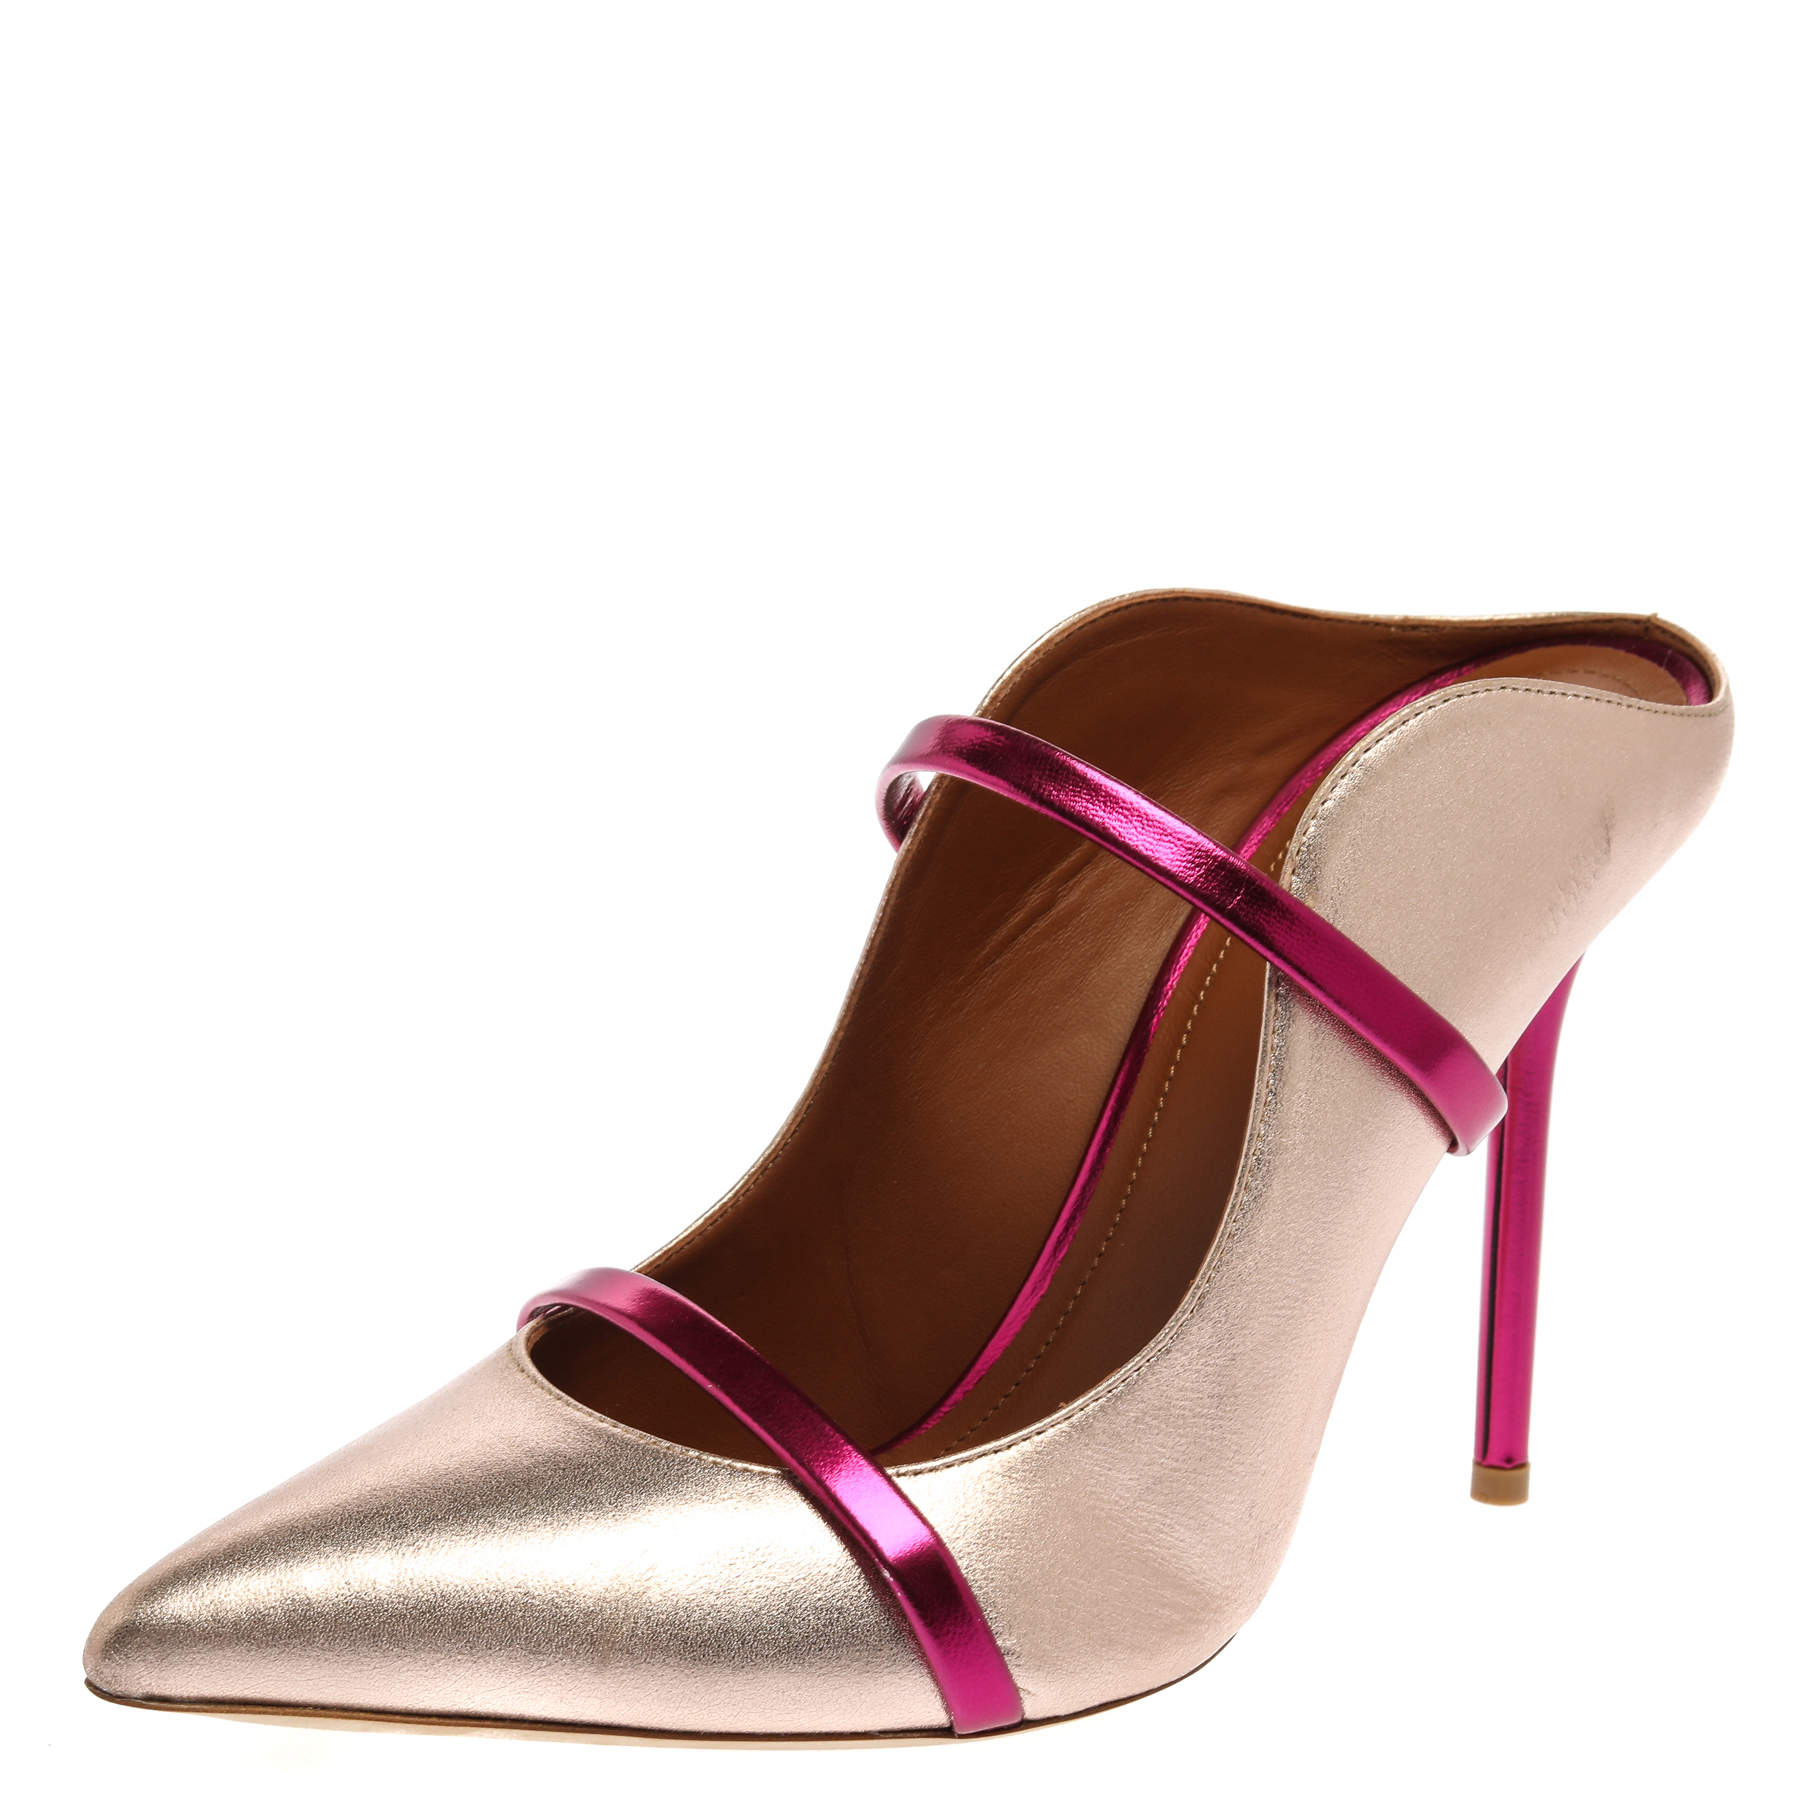 Malone Souliers Rose Gold Leather Maureen Sandals Size 38.5